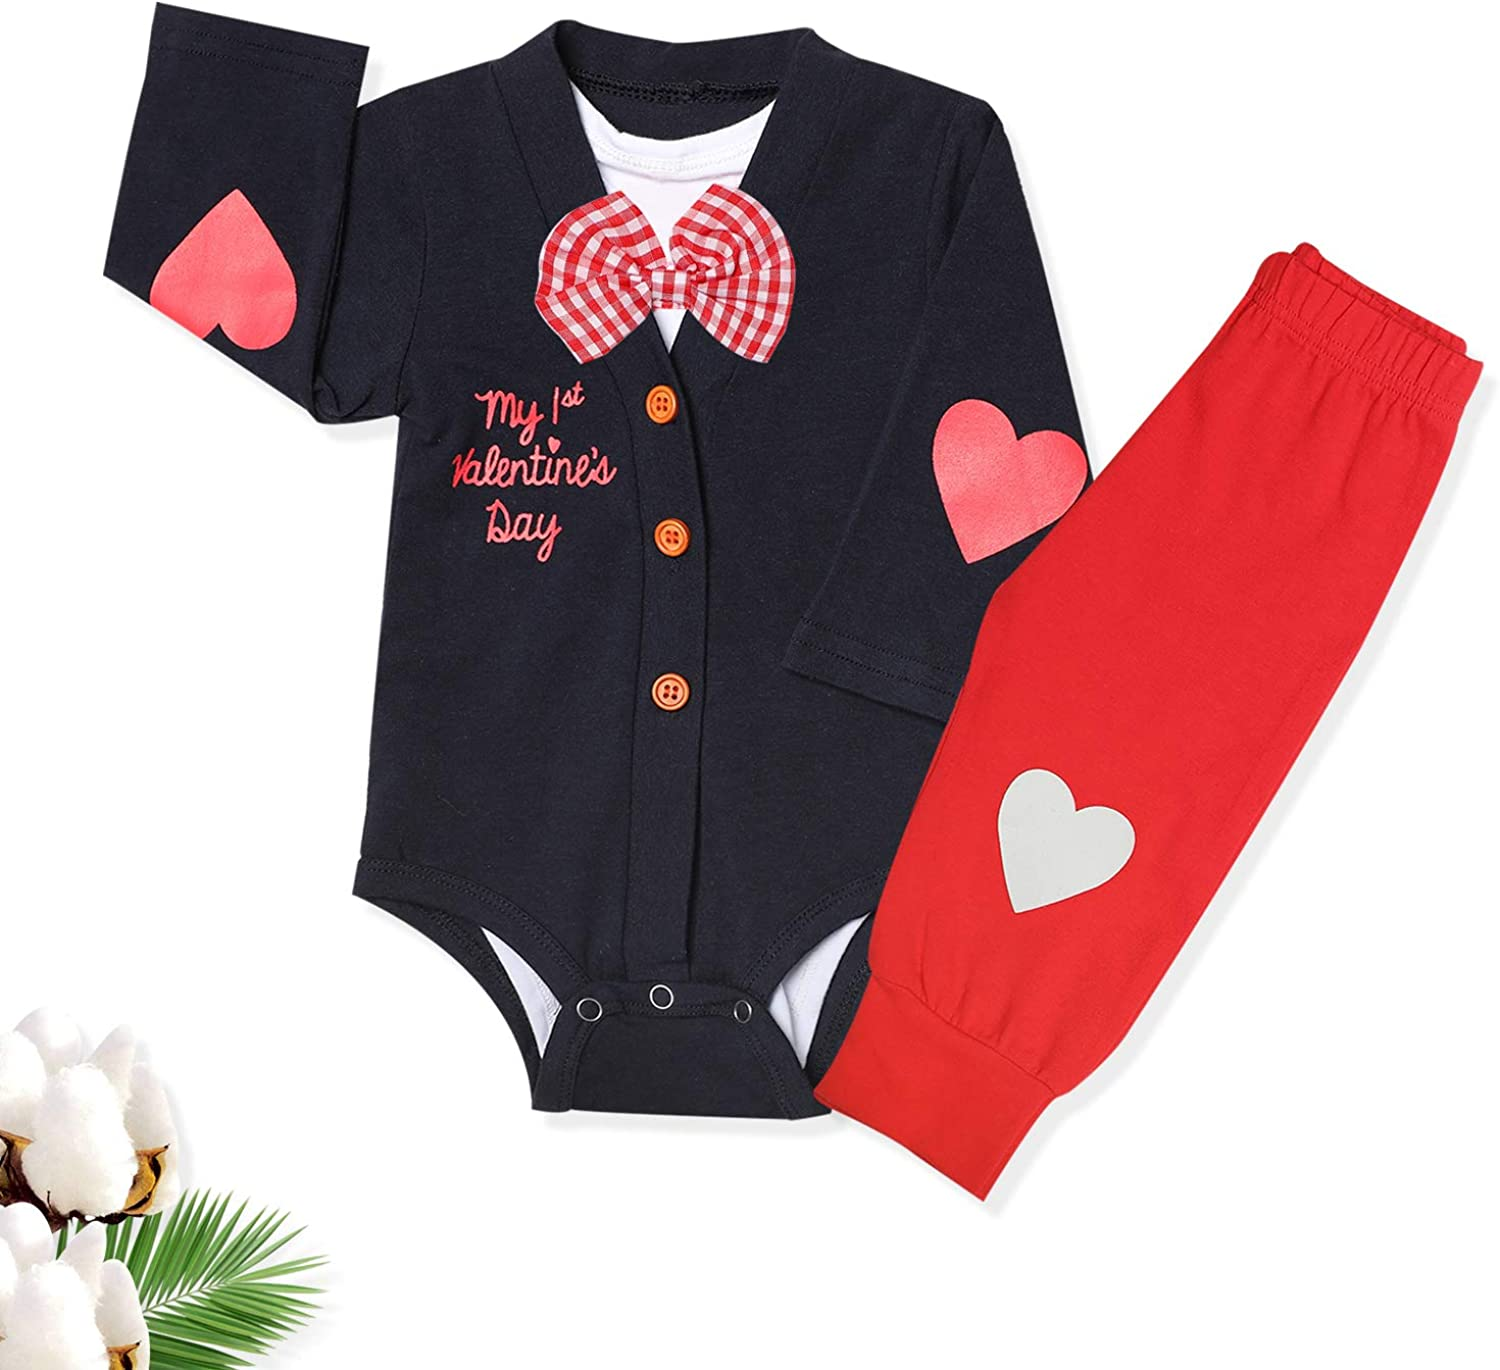 MADE TO ORDER Available in Newborn to 12 Month Size Baby Heart PantsValentine/'s Day Photo PropCrochet Baby Pants with Suspenders